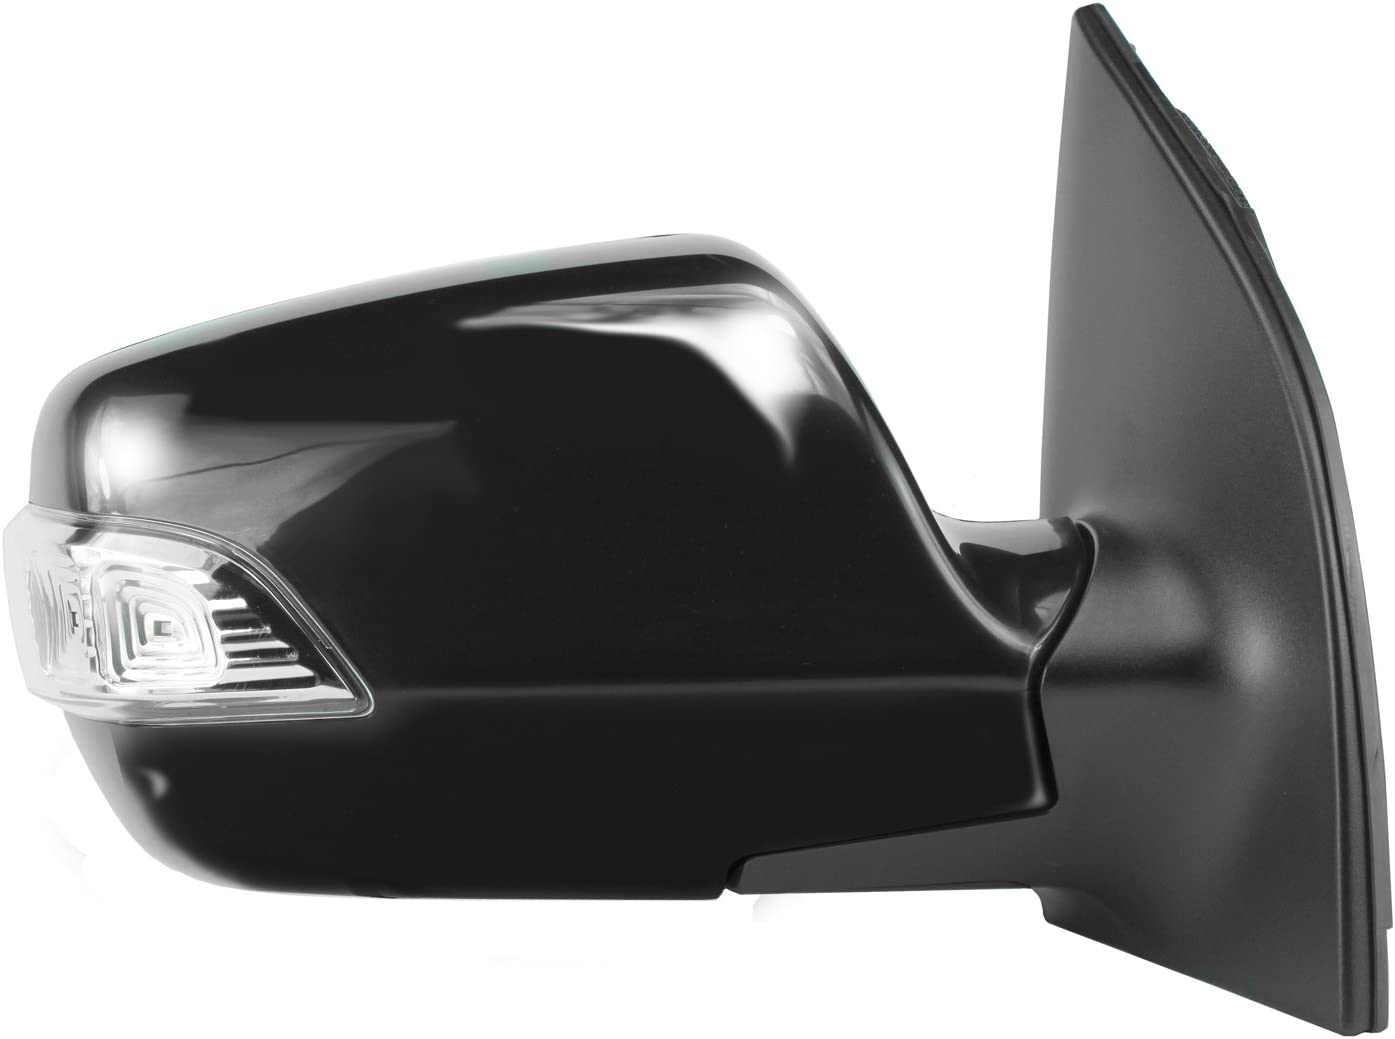 w//Turn Signal Power Foldaway Fit System Passenger Side Mirror for Kia Sedona Textured Black w//PTM Cover